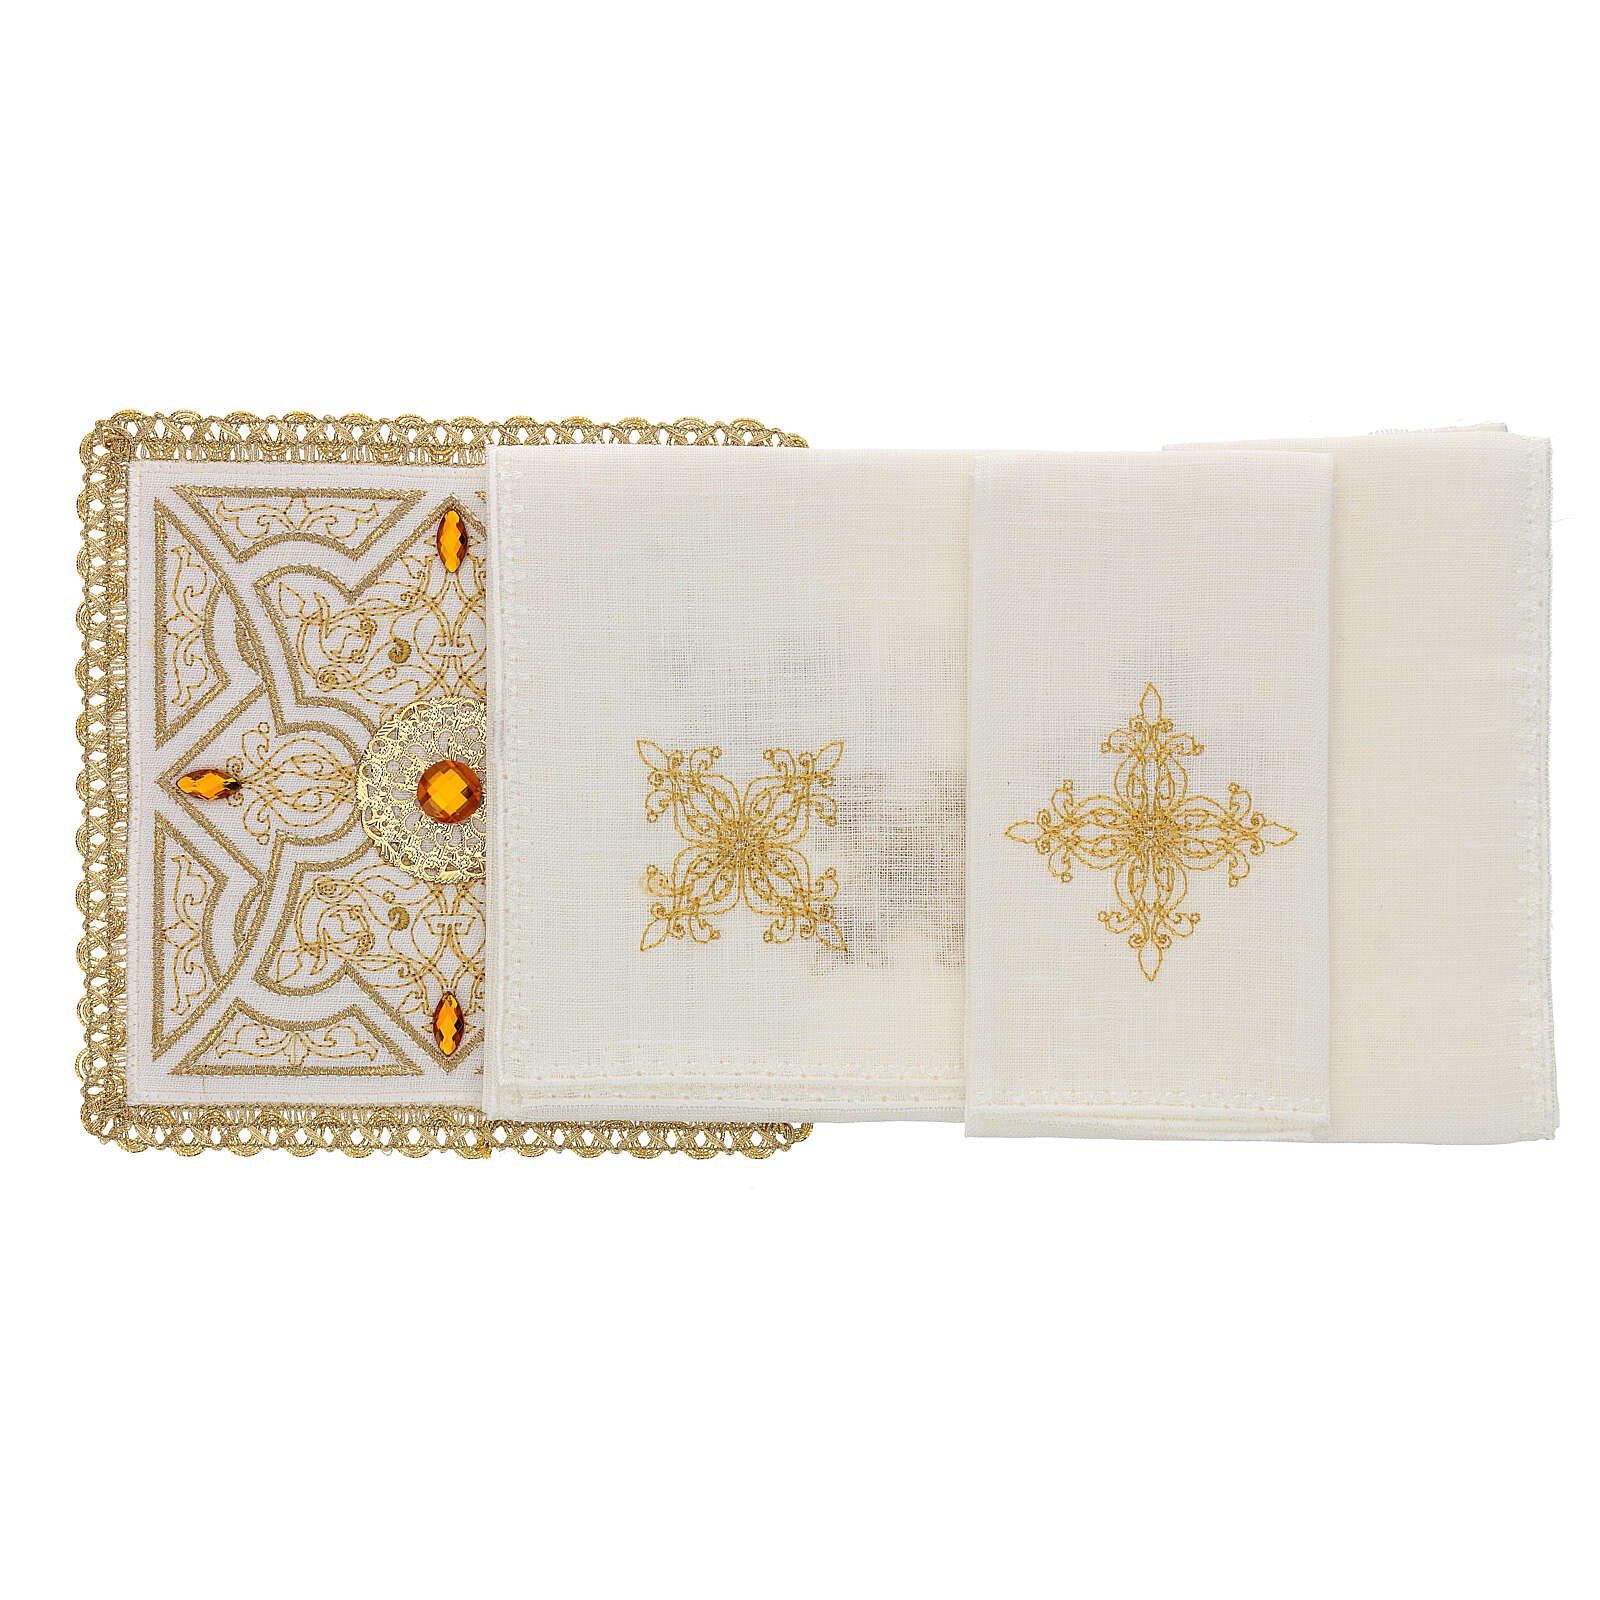 Altar linen set 4 pcs, 100% LINEN gold embroidery Limited Edition 4